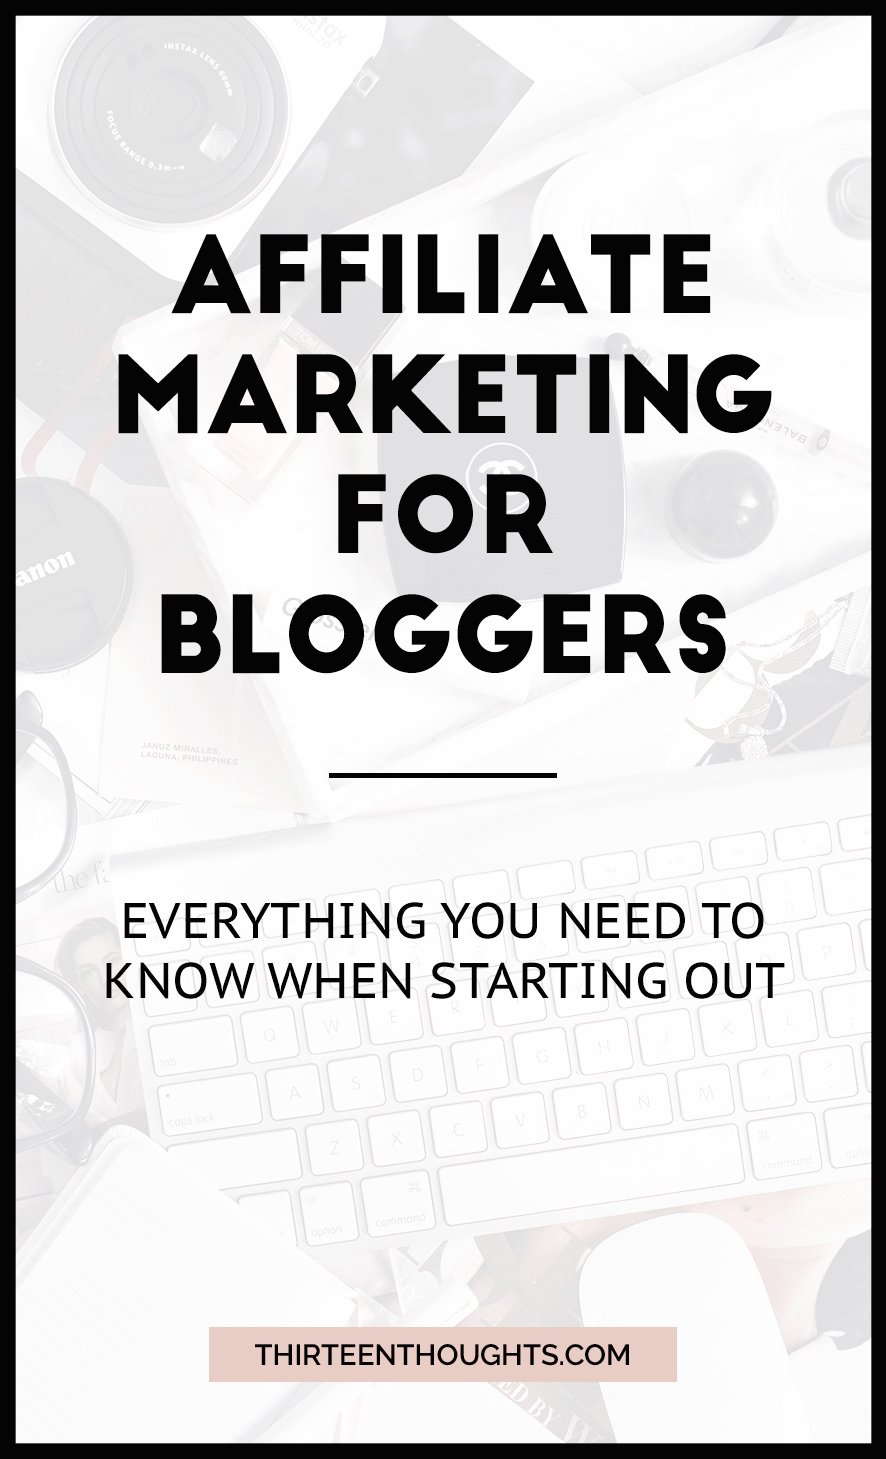 Affiliate Marketing for Bloggers.